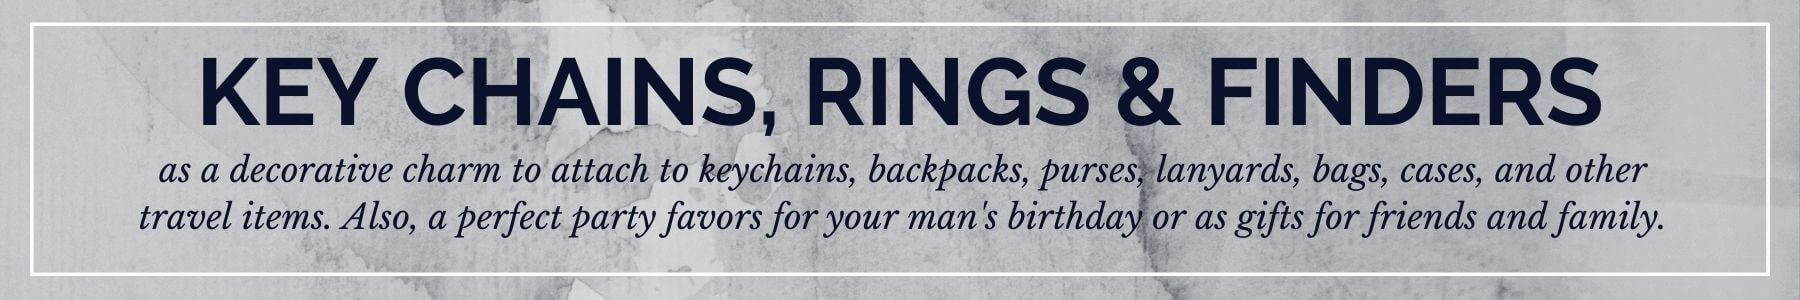 Key Chains, Rings & Finders - Shop at Deluge Sales